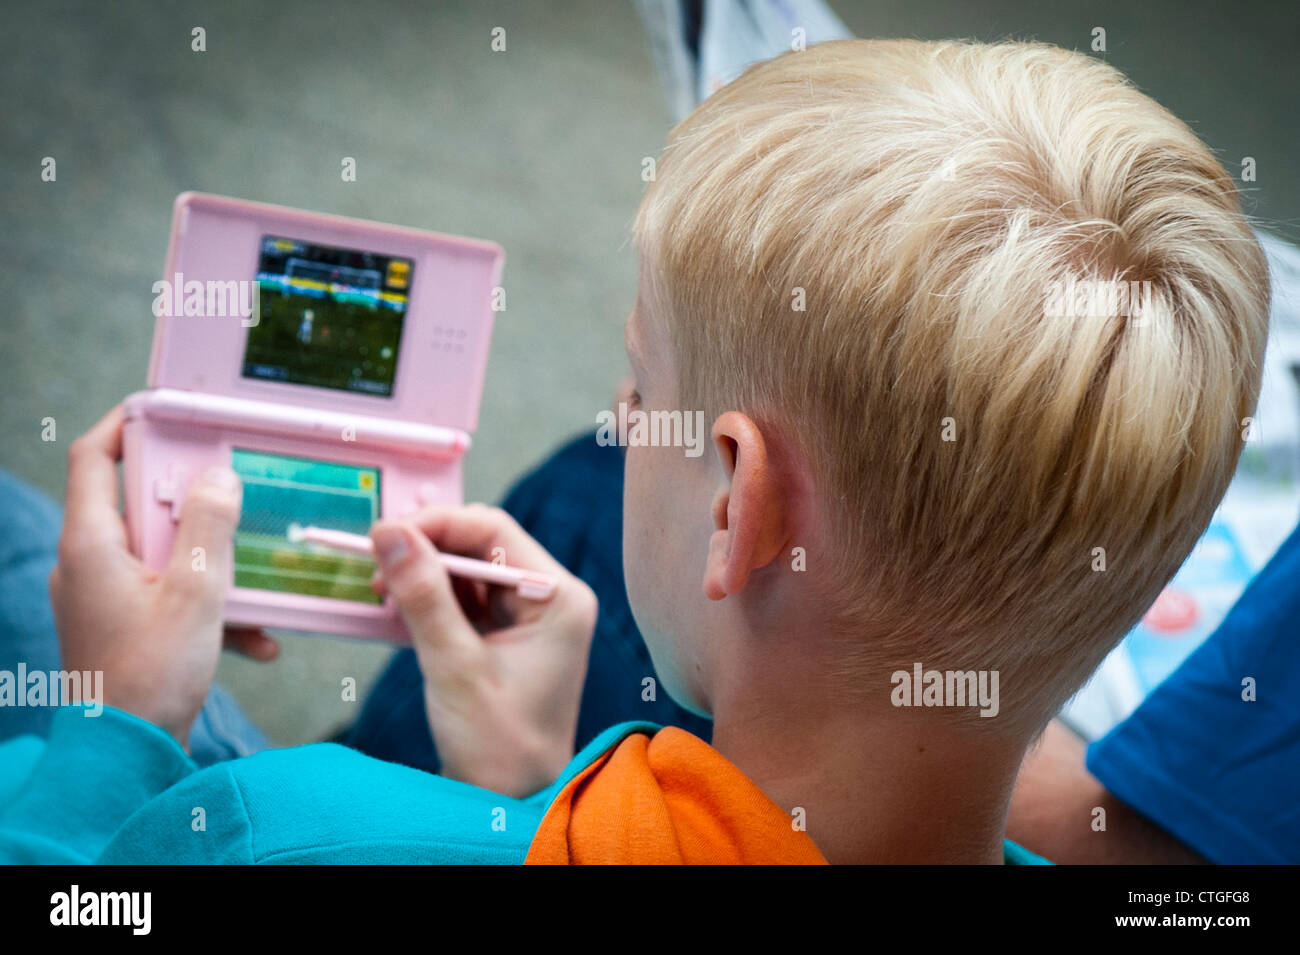 London St Pancras Station young blond boy lad playing football game on Nintendo DS games console in pink on lower - Stock Image